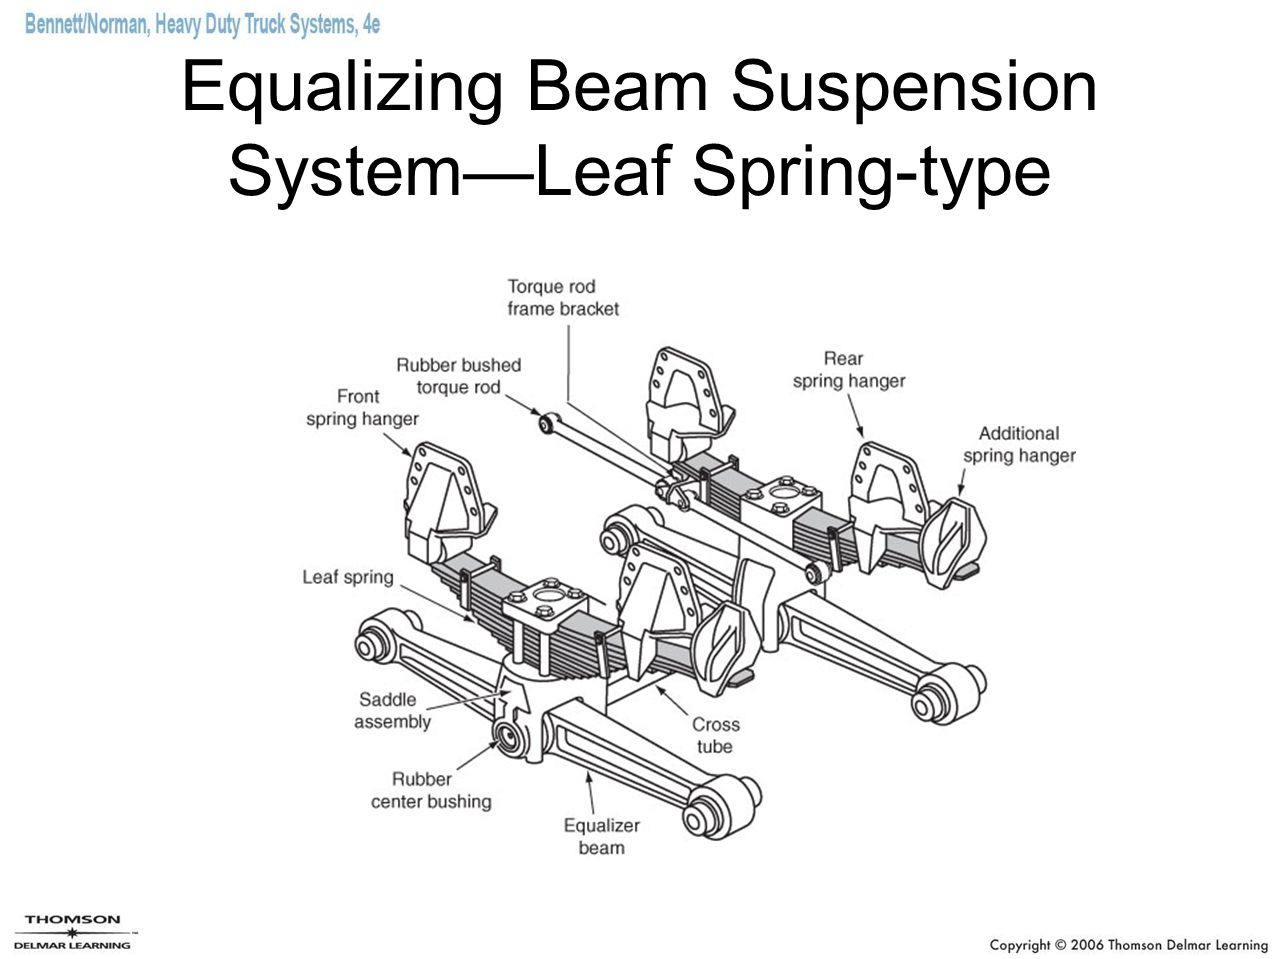 Chapter 26 Suspension Systems